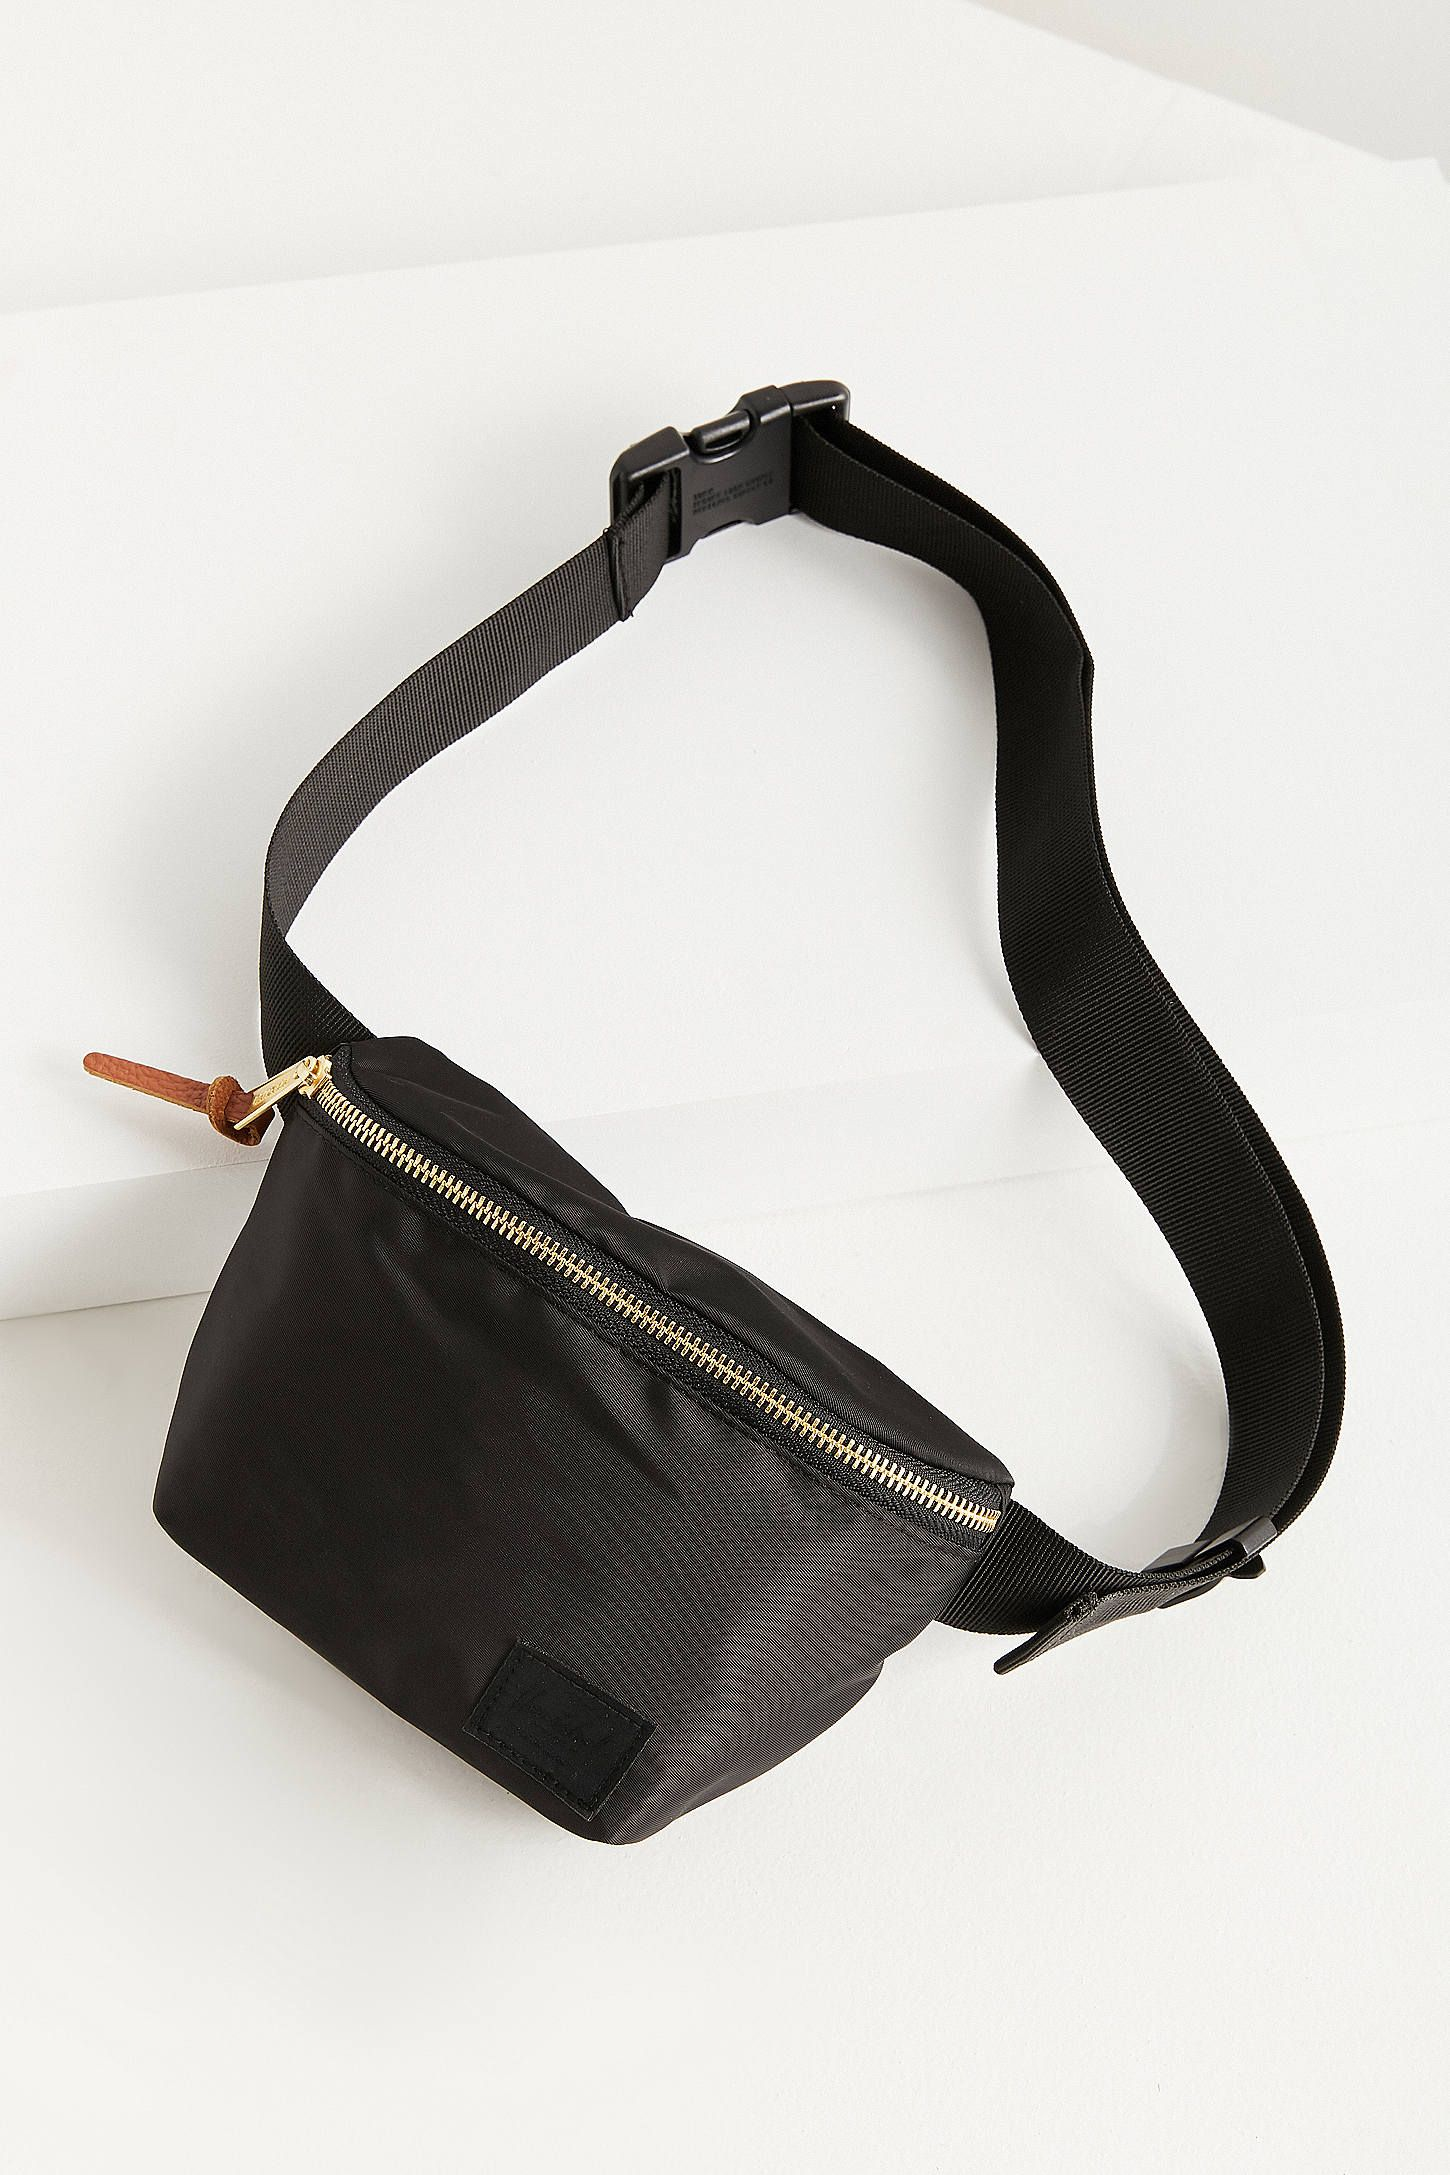 6acc1086ee6 Shop Herschel Supply Co. Fourteen Belt Bag at Urban Outfitters today. We  carry all the latest styles, colors and brands for you to choose from right  here.